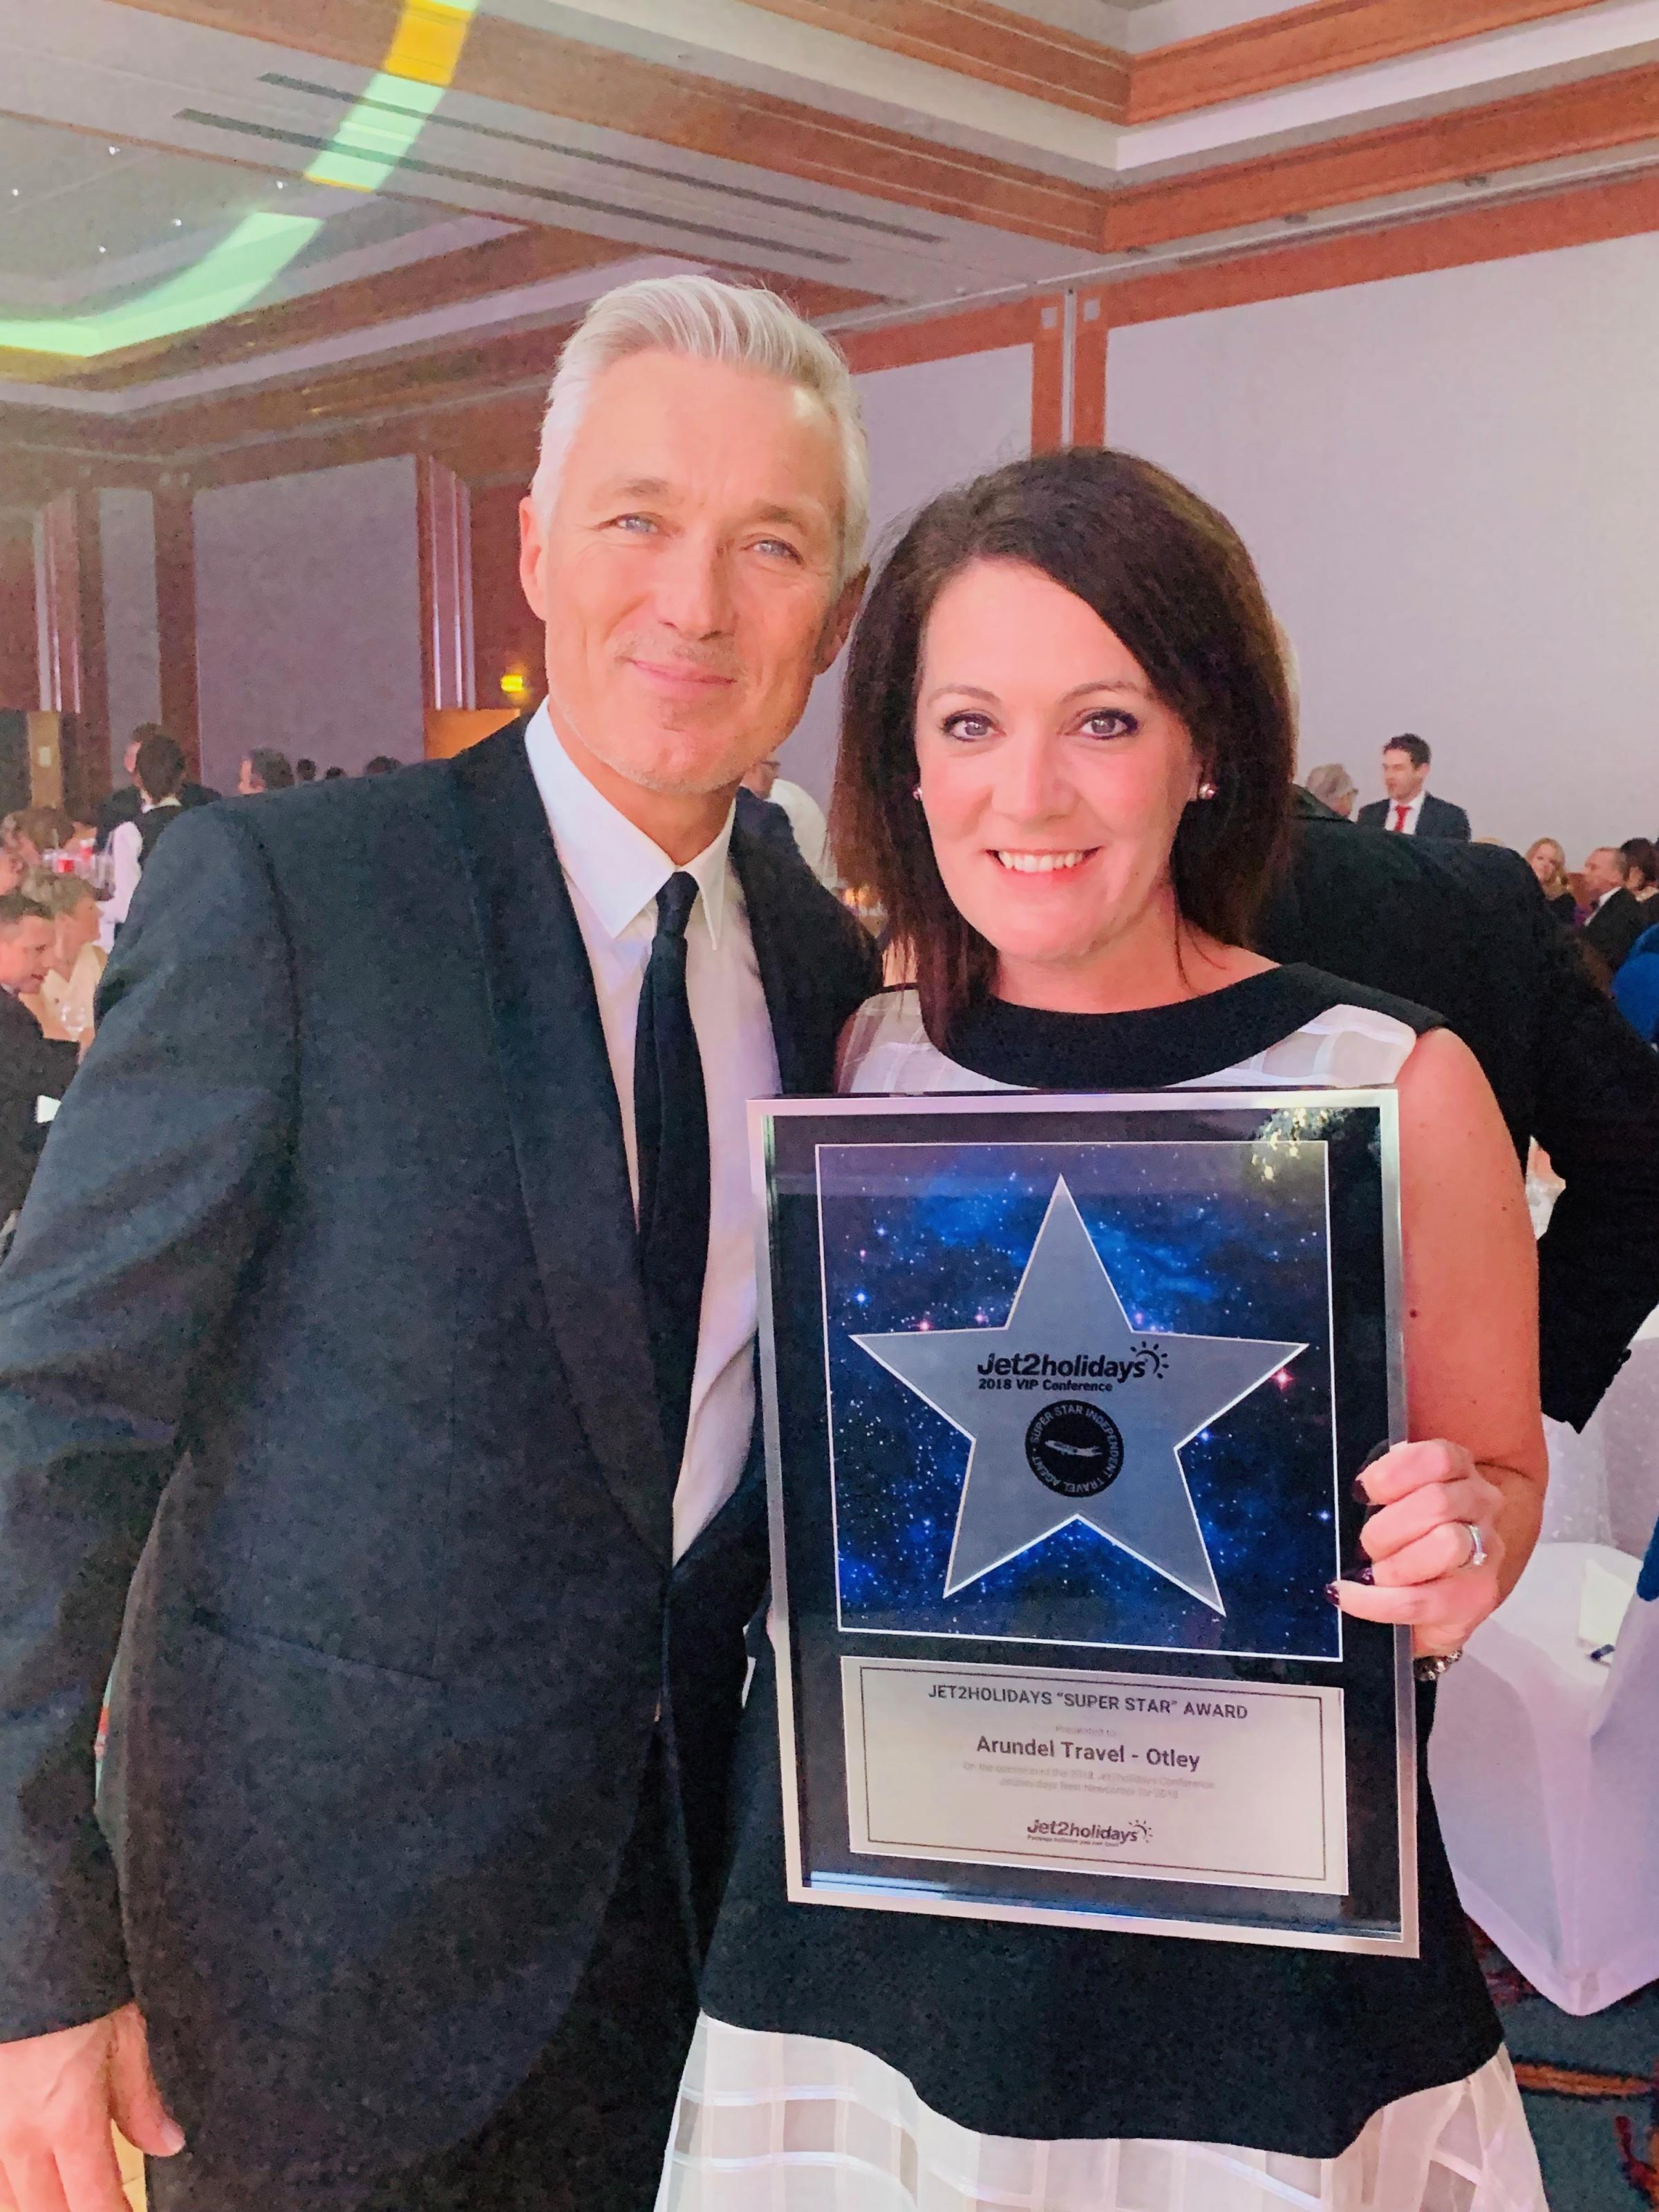 Helen Parry of Otley firm Arundel Travel receiving the Jet2holidays Best Newcomer Award from Martin Kemp